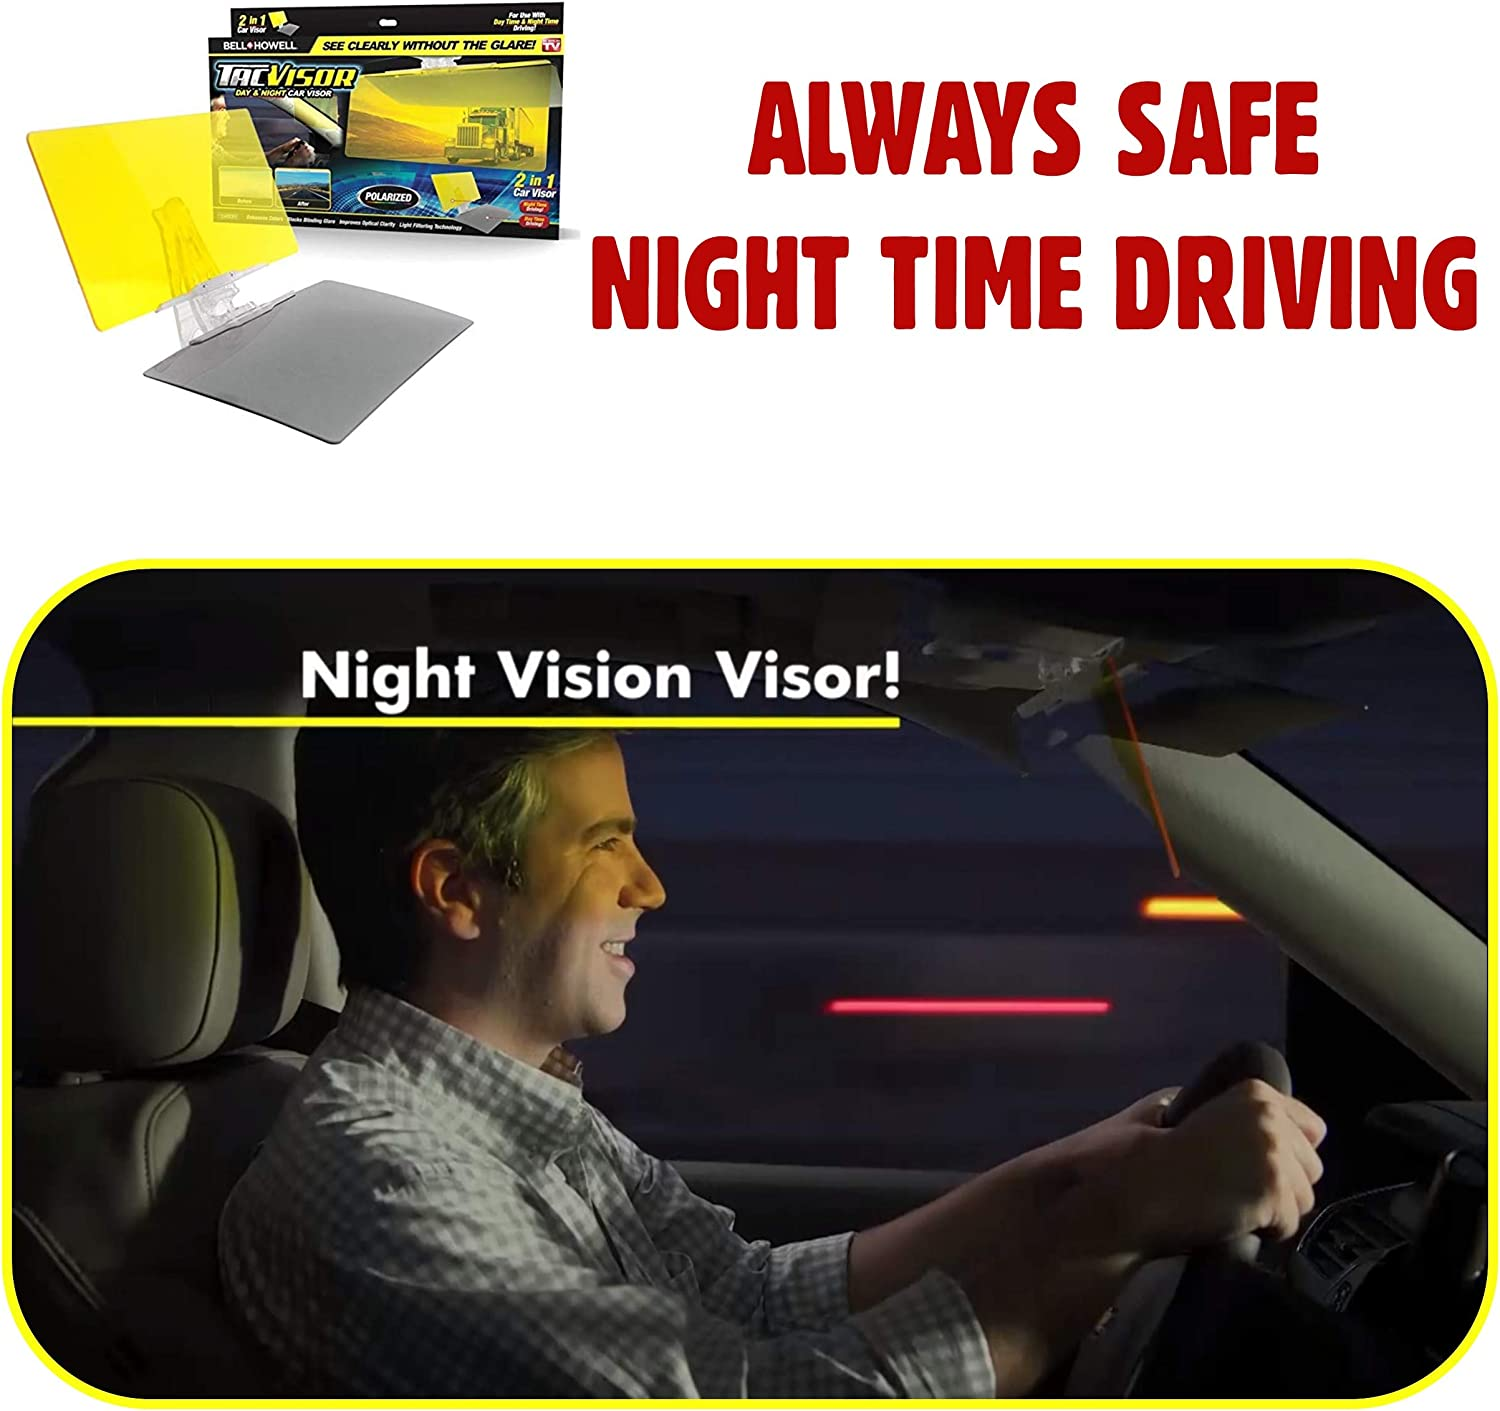 Howell TACVISOR for Day and Night Bell Anti-Glare Car Visor UV-Filtering//Protection As Seen On TV